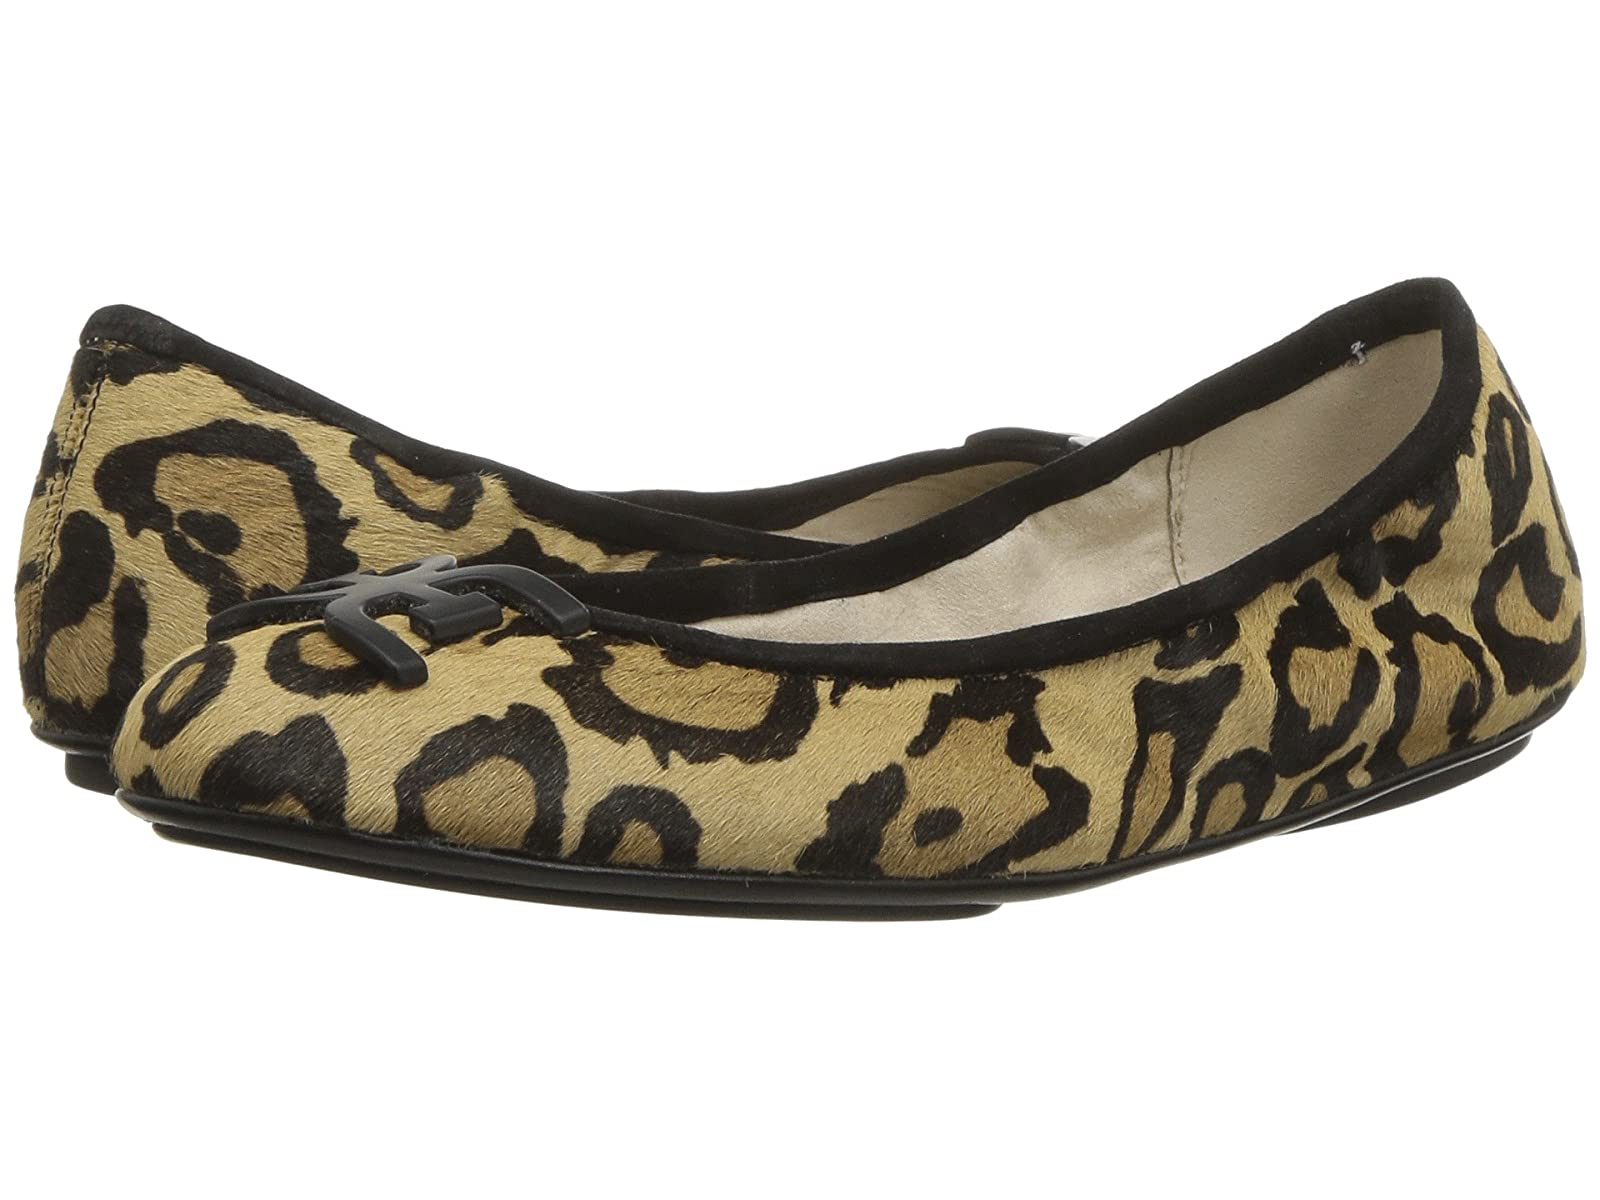 Sam Edelman FlorenceCheap and distinctive eye-catching shoes